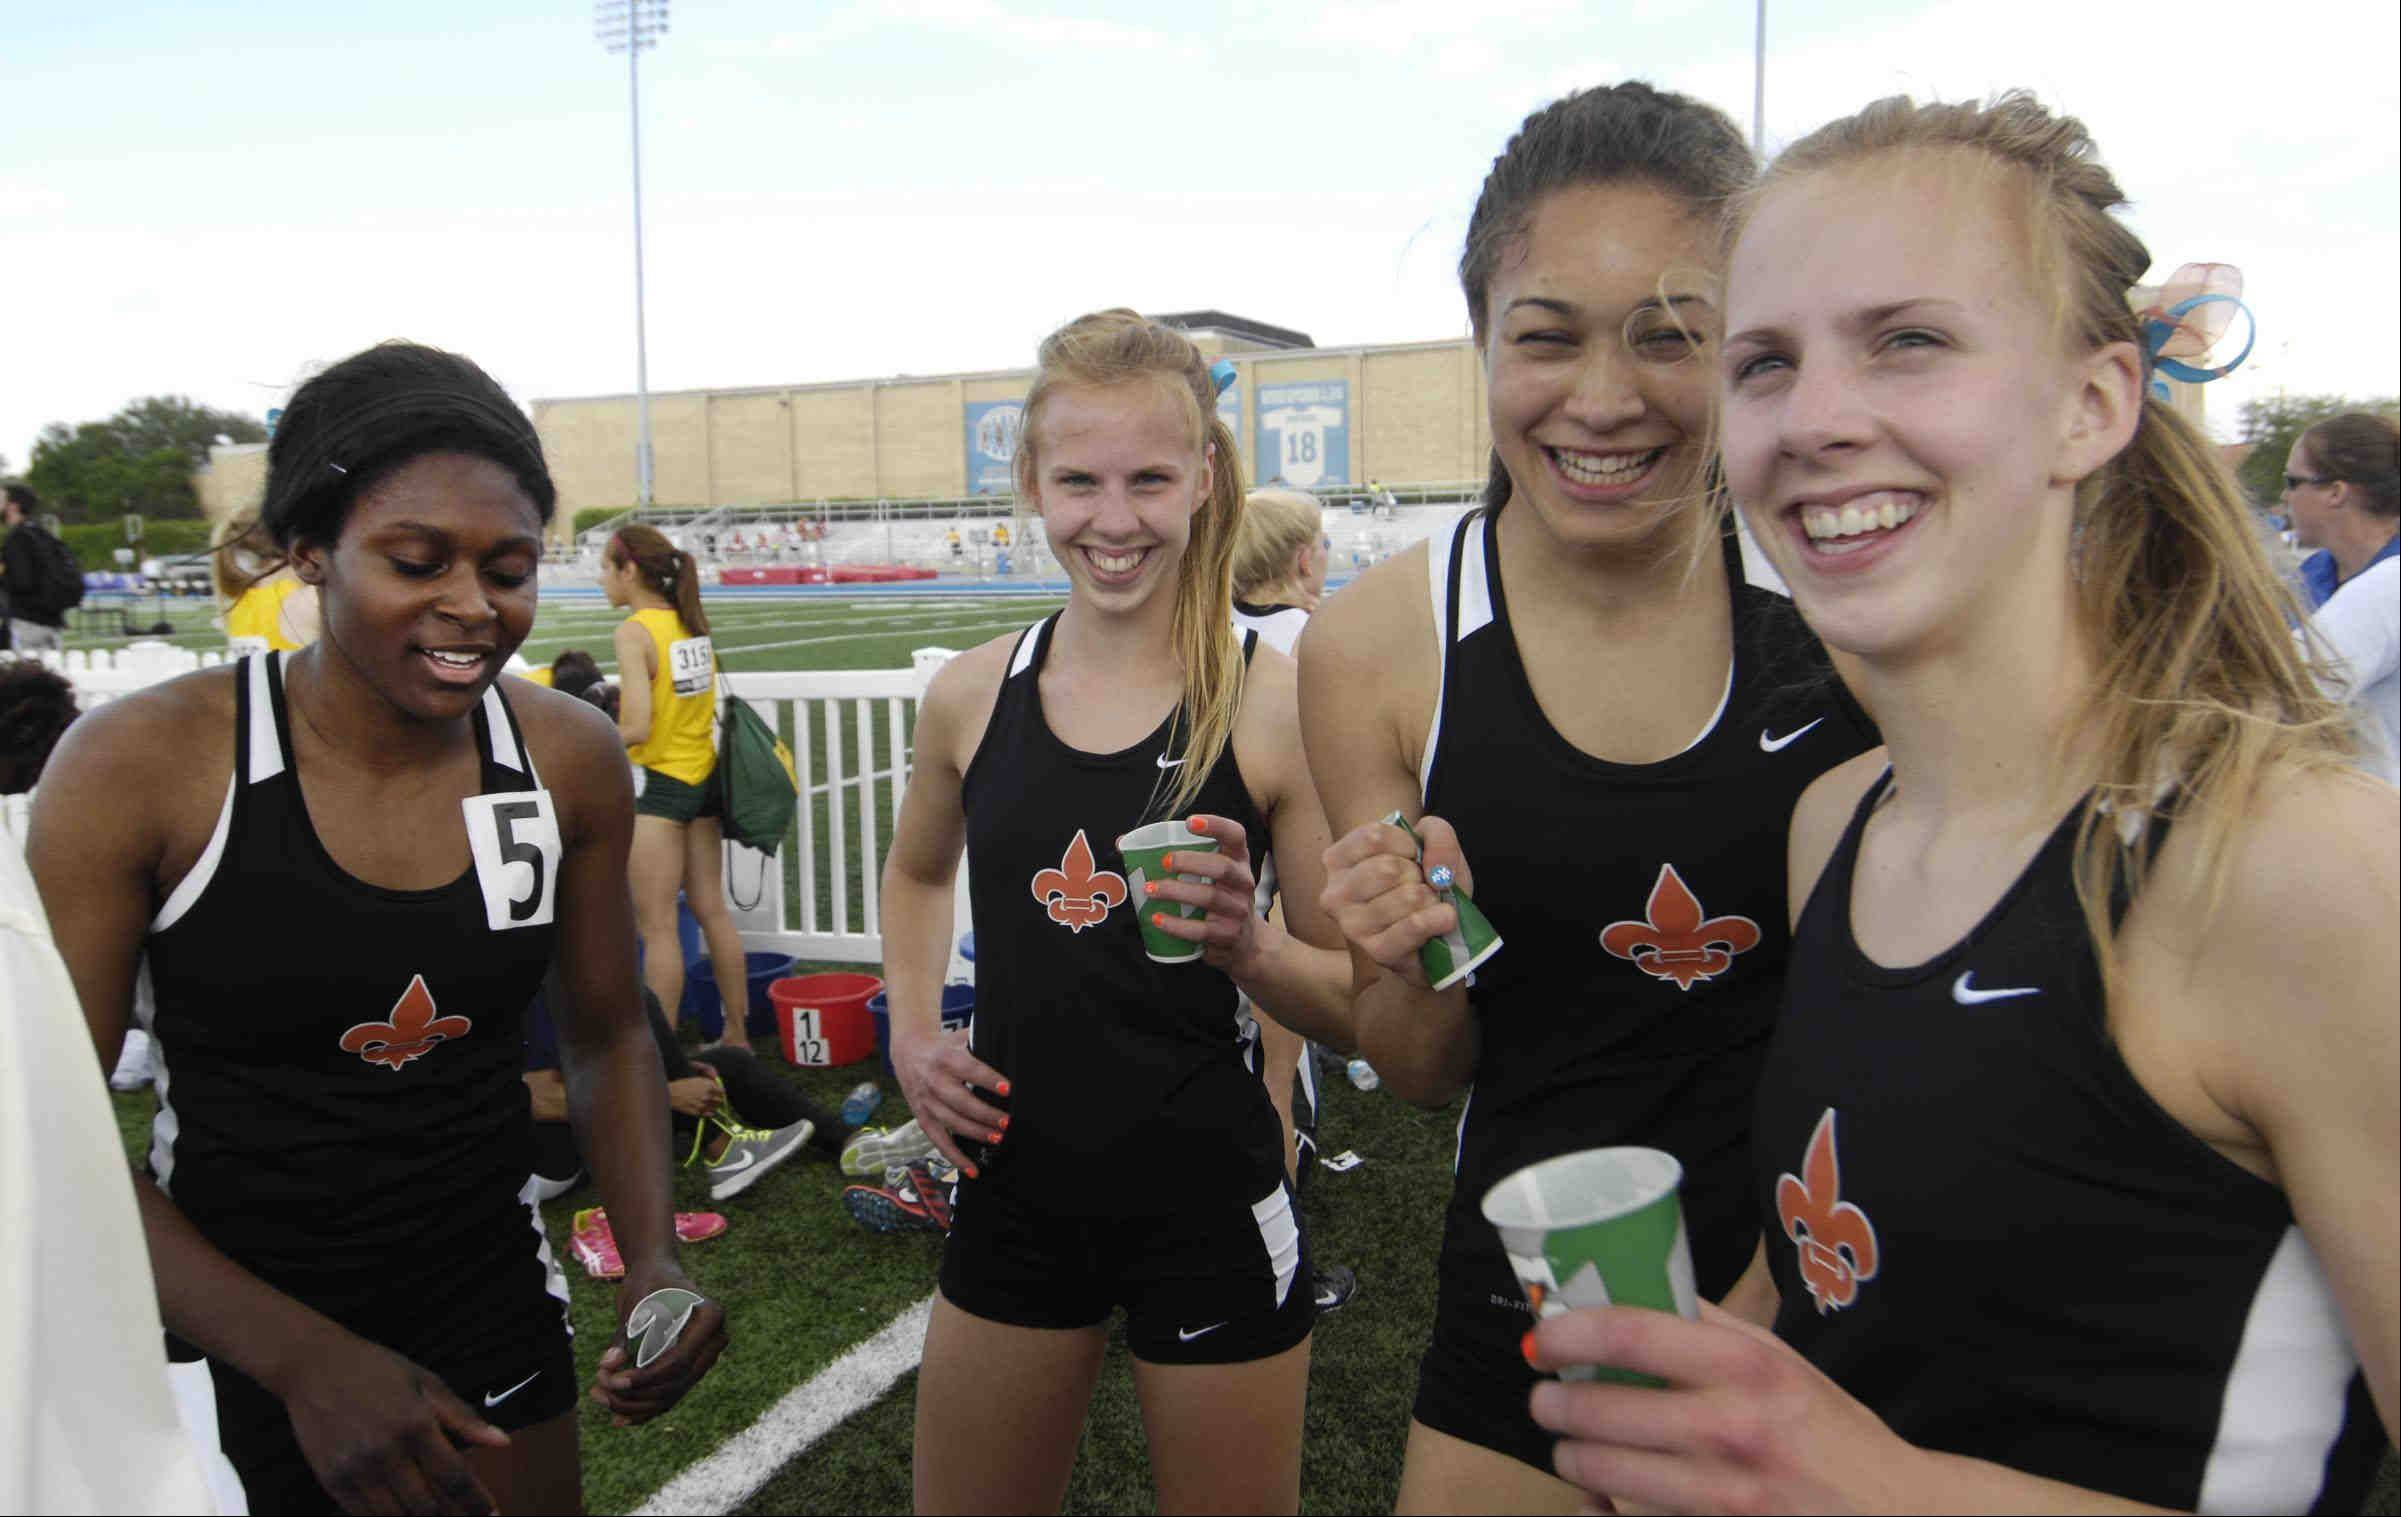 St. Charles East's Britney Williams, left, Allison Chmelik, Jordan Shead, and Elizabeth Chmelik, right, celebrate their 1,600 meter relay win Saturday at the Class 3A girls state track and field finals at O'Brien Stadium at Eastern Illinois University in Charleston.